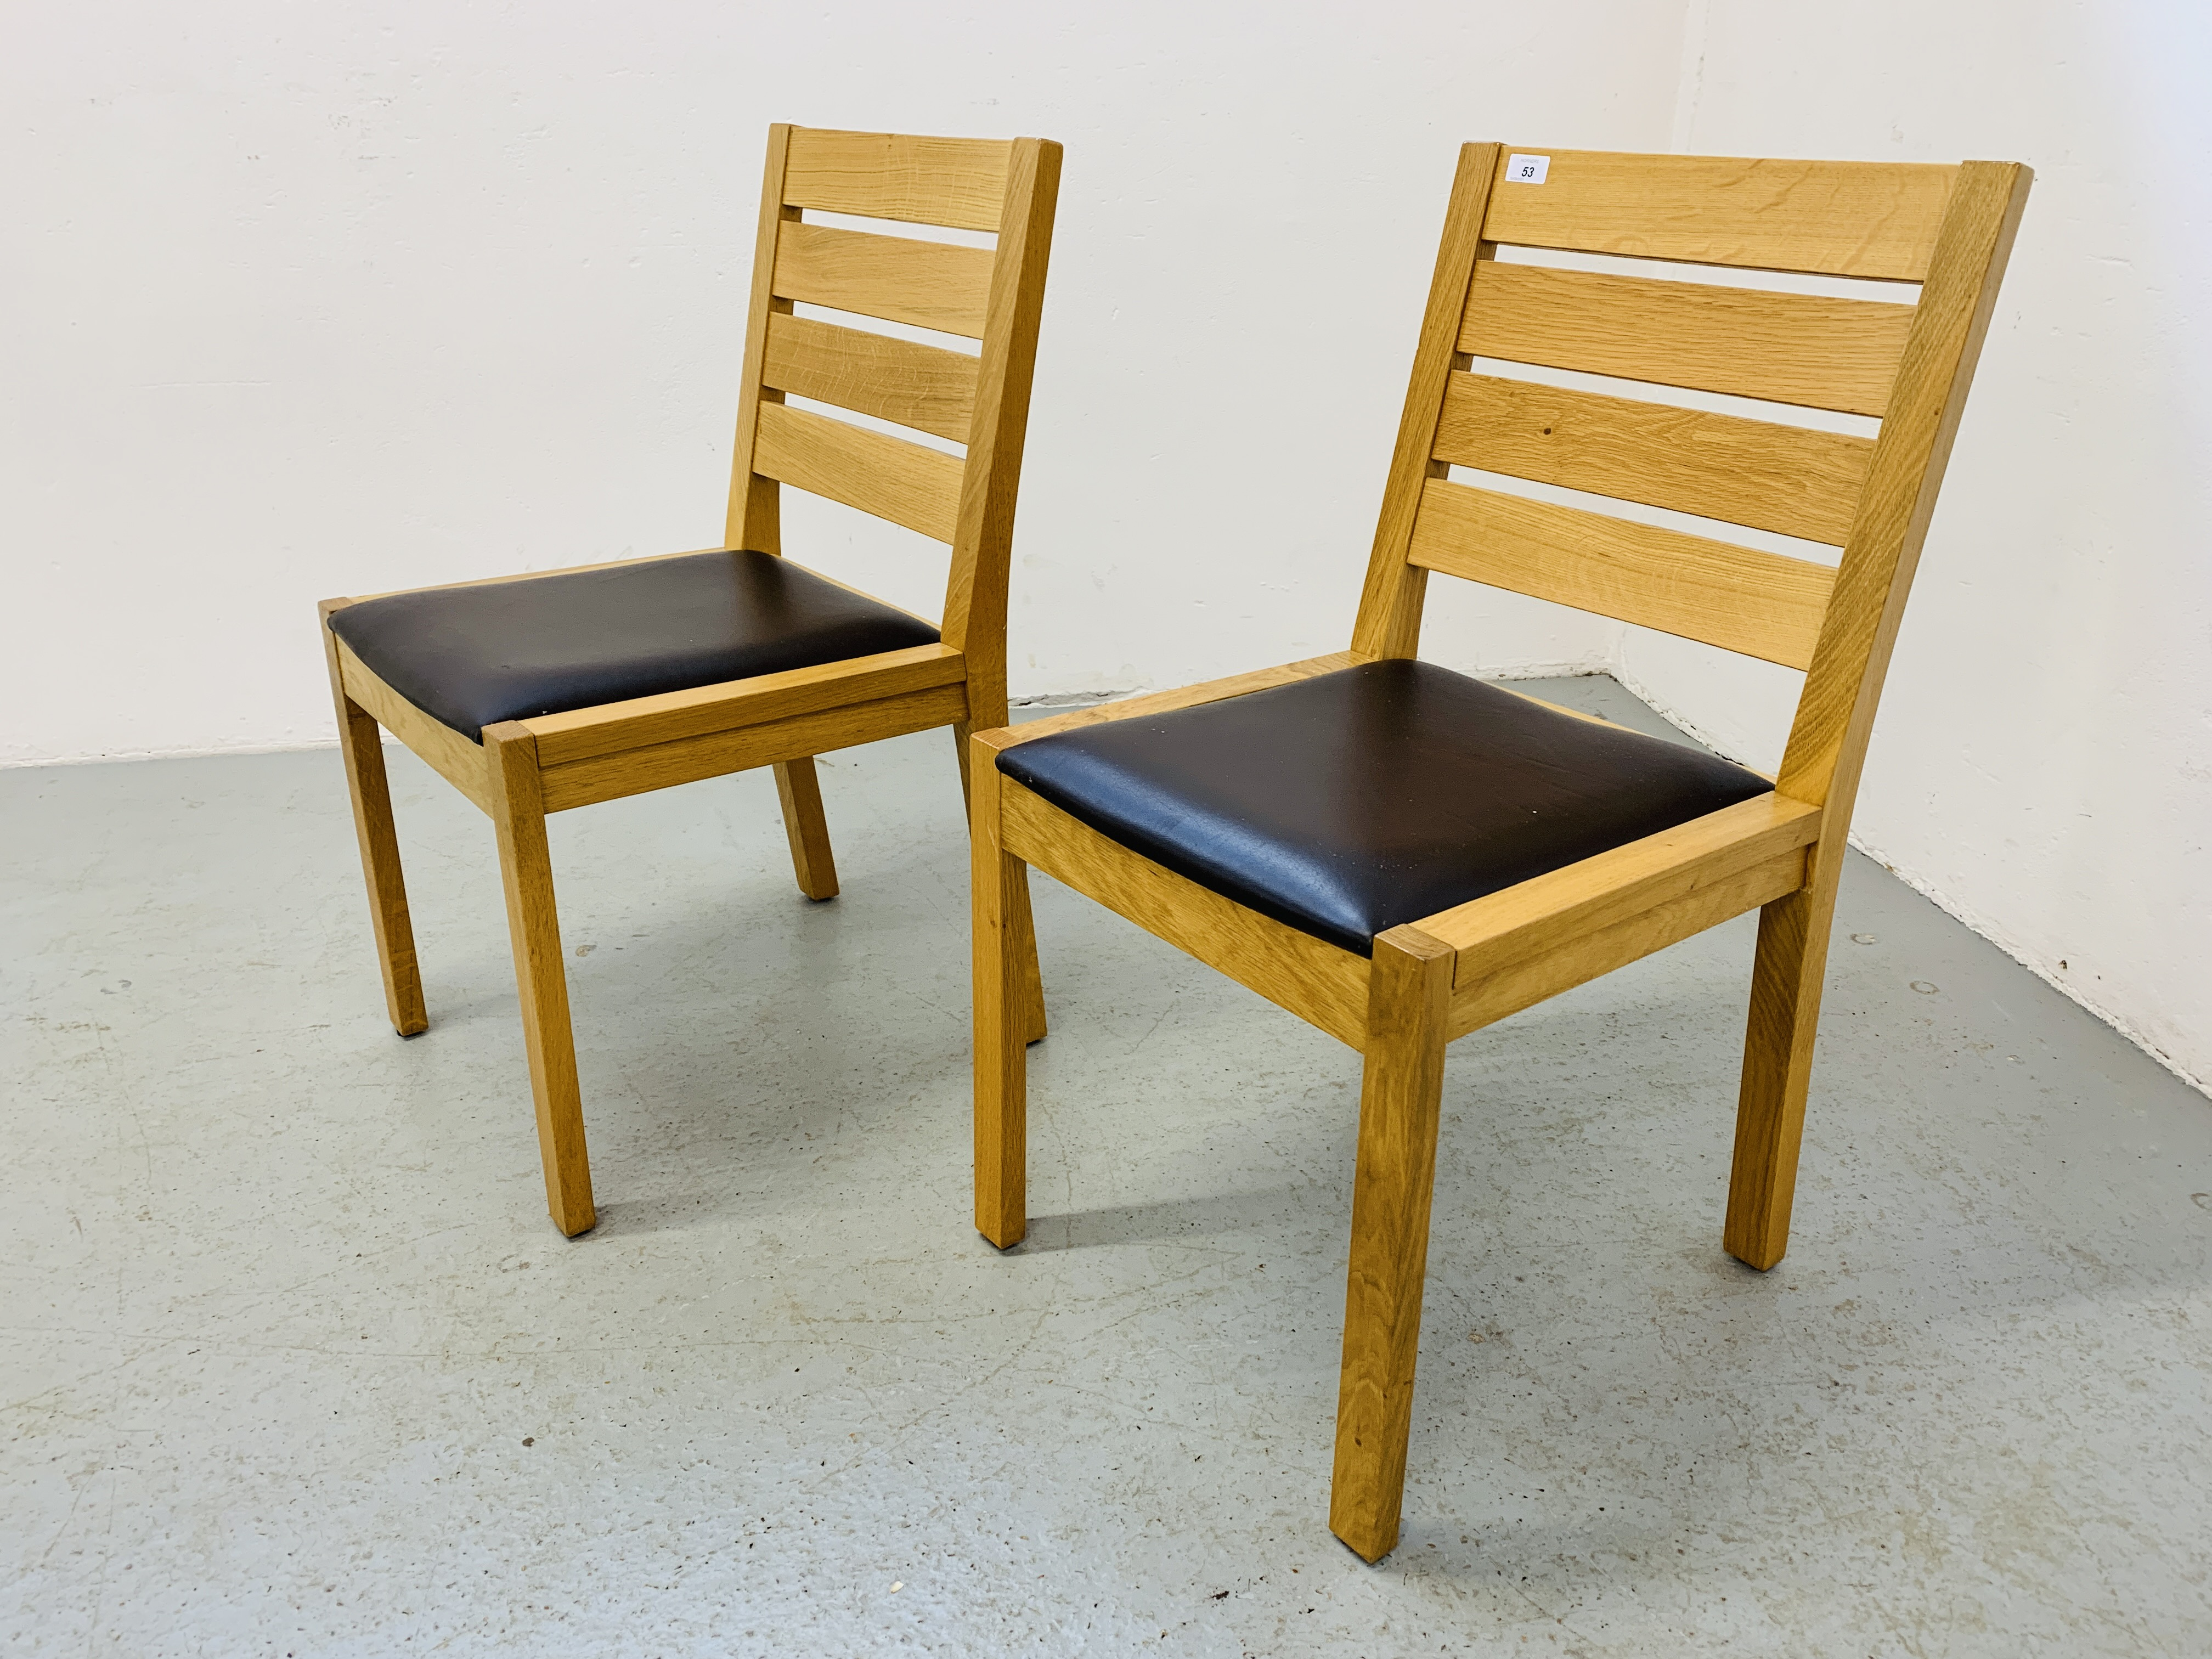 A PAIR OF LIGHT OAK MODERN SIDE CHAIRS - Image 2 of 9